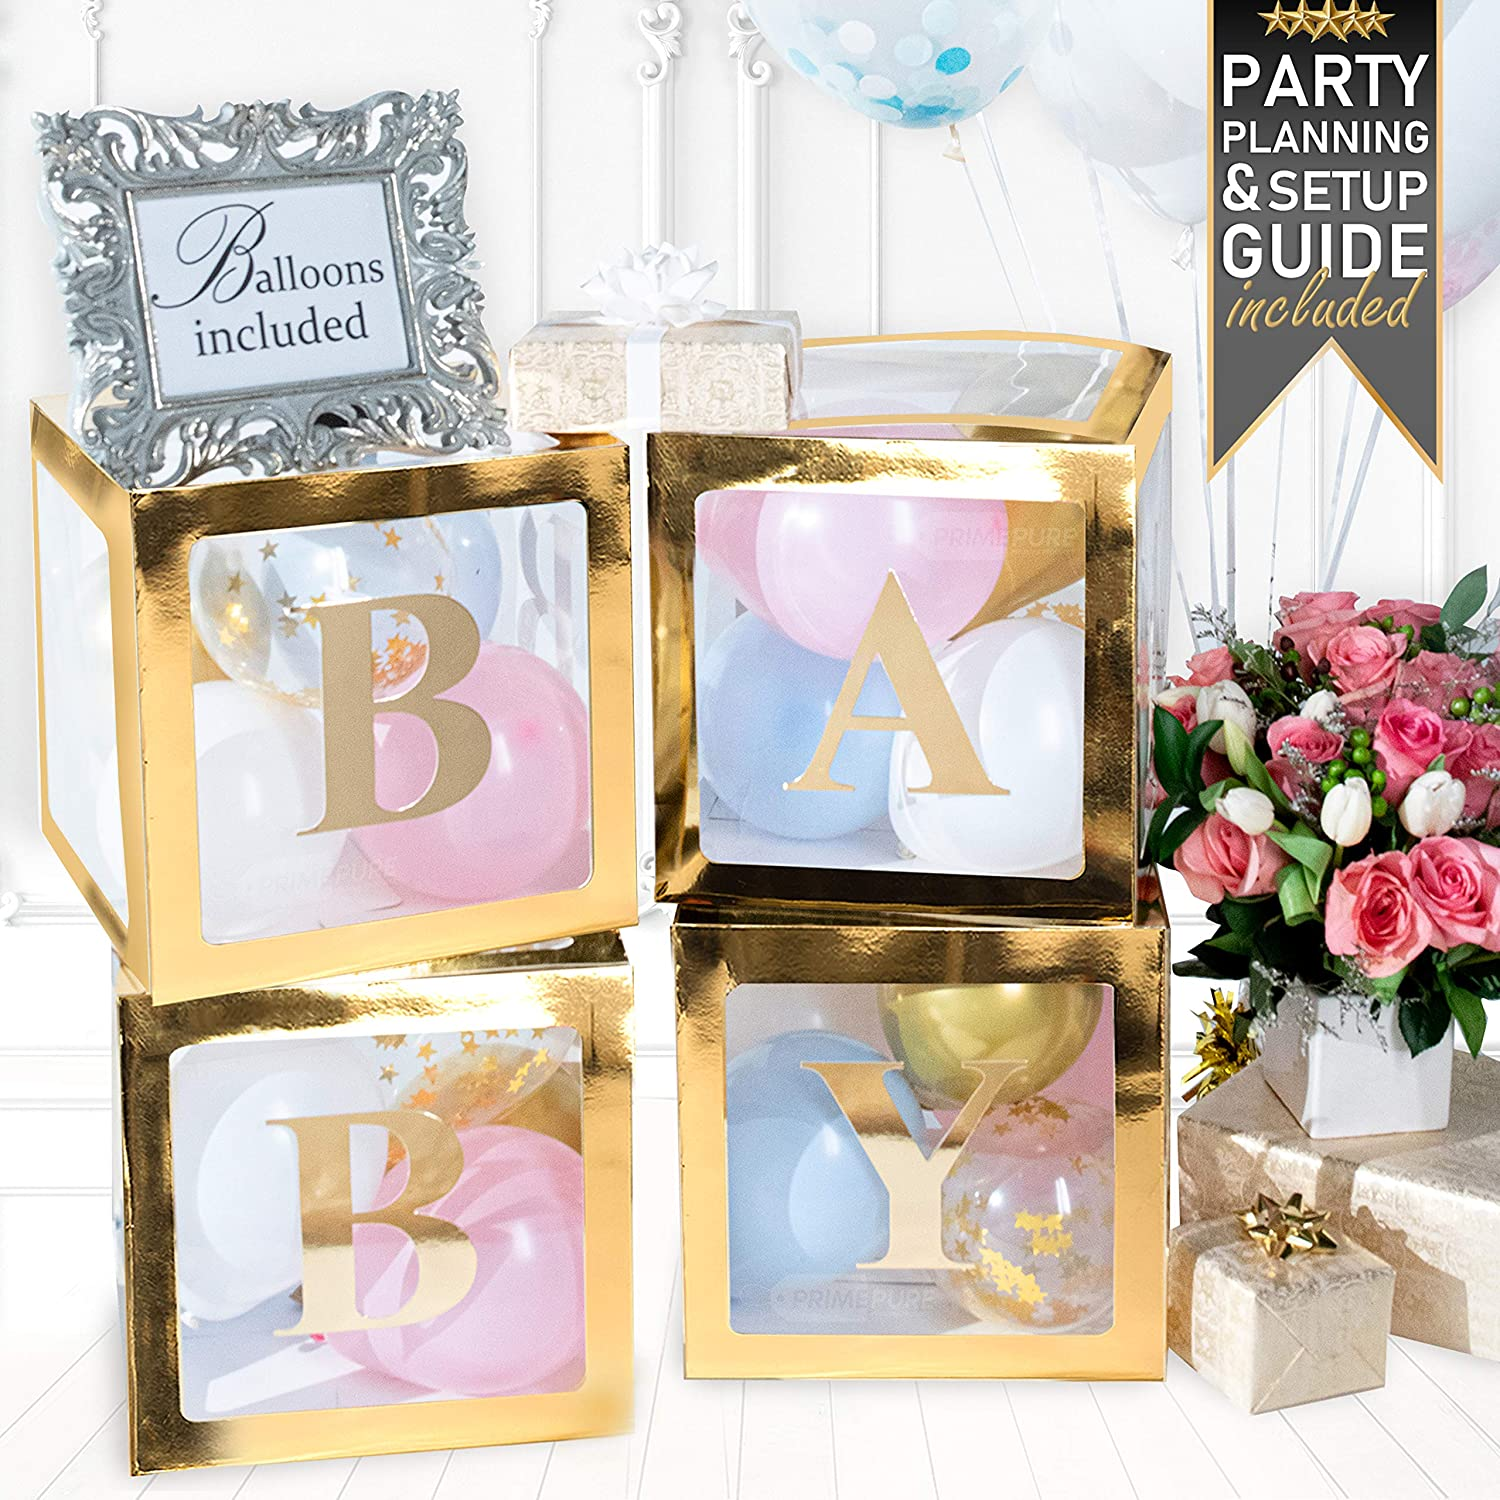 PRIMEPURE Premium Gold Baby Boxes - For Gender Reveal, Gender Reveal Party Supplies, Gender Reveal Decorations, Baby Shower, Baby Shower Decorations For Girl and Baby Shower Decorations For Boy